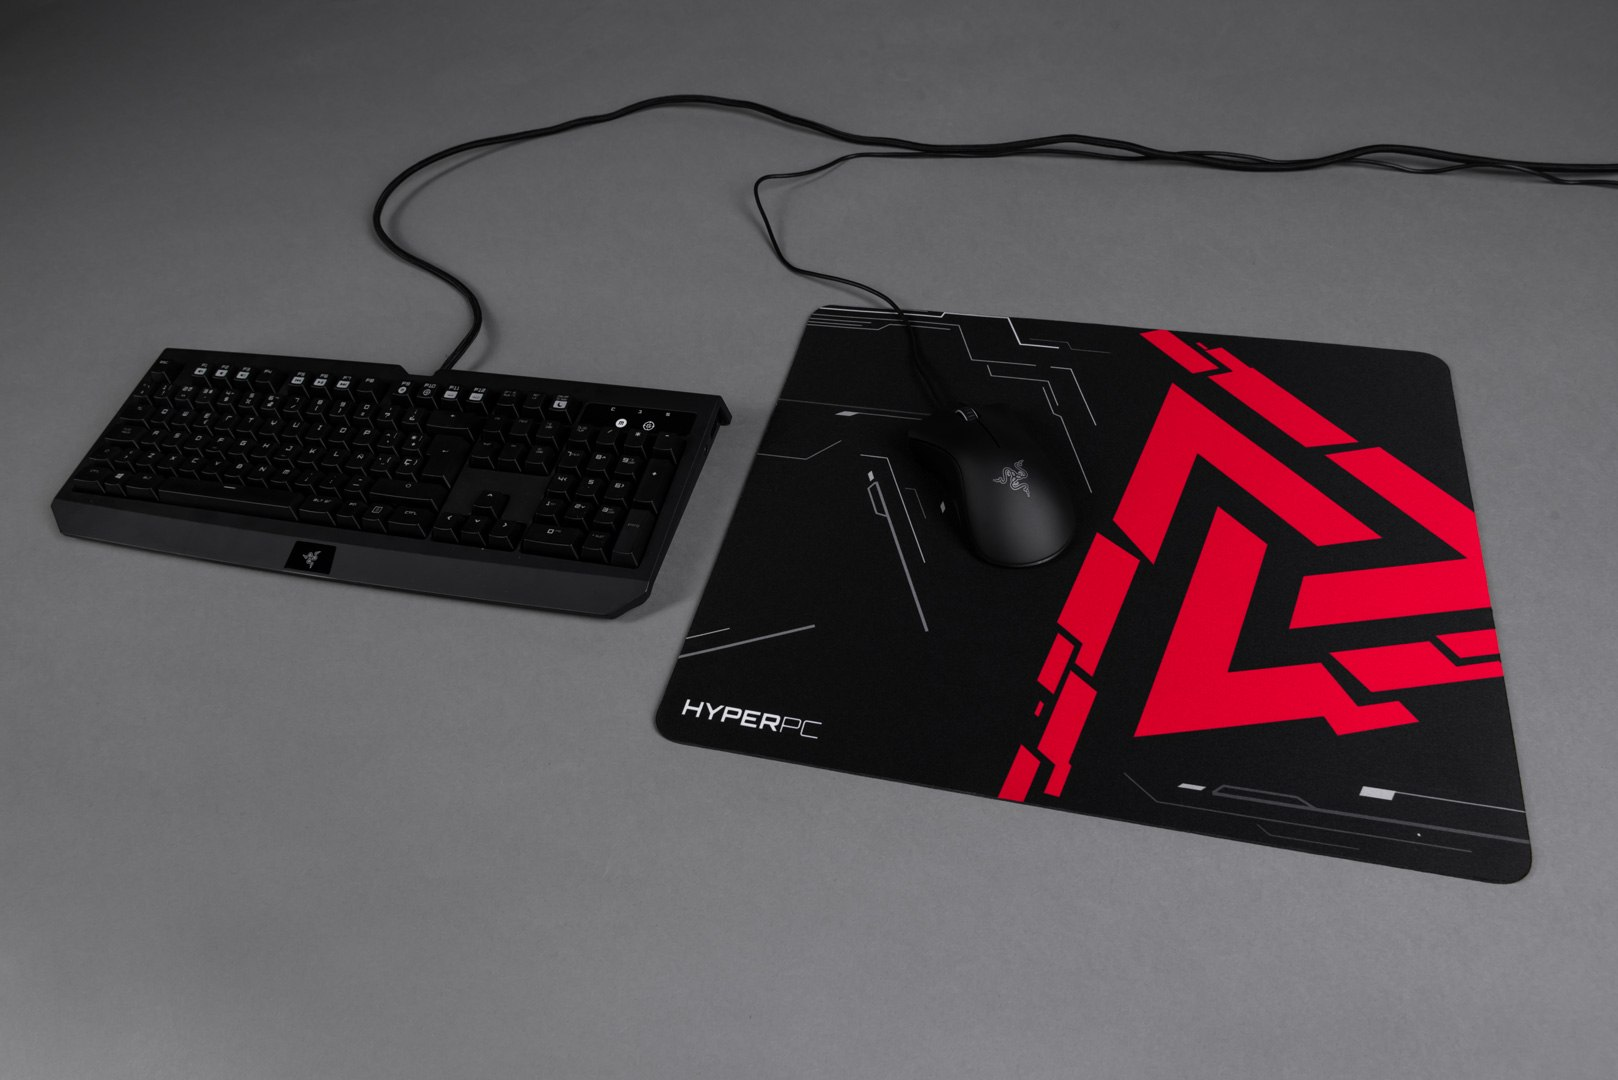 hyperpc mouse pad 08